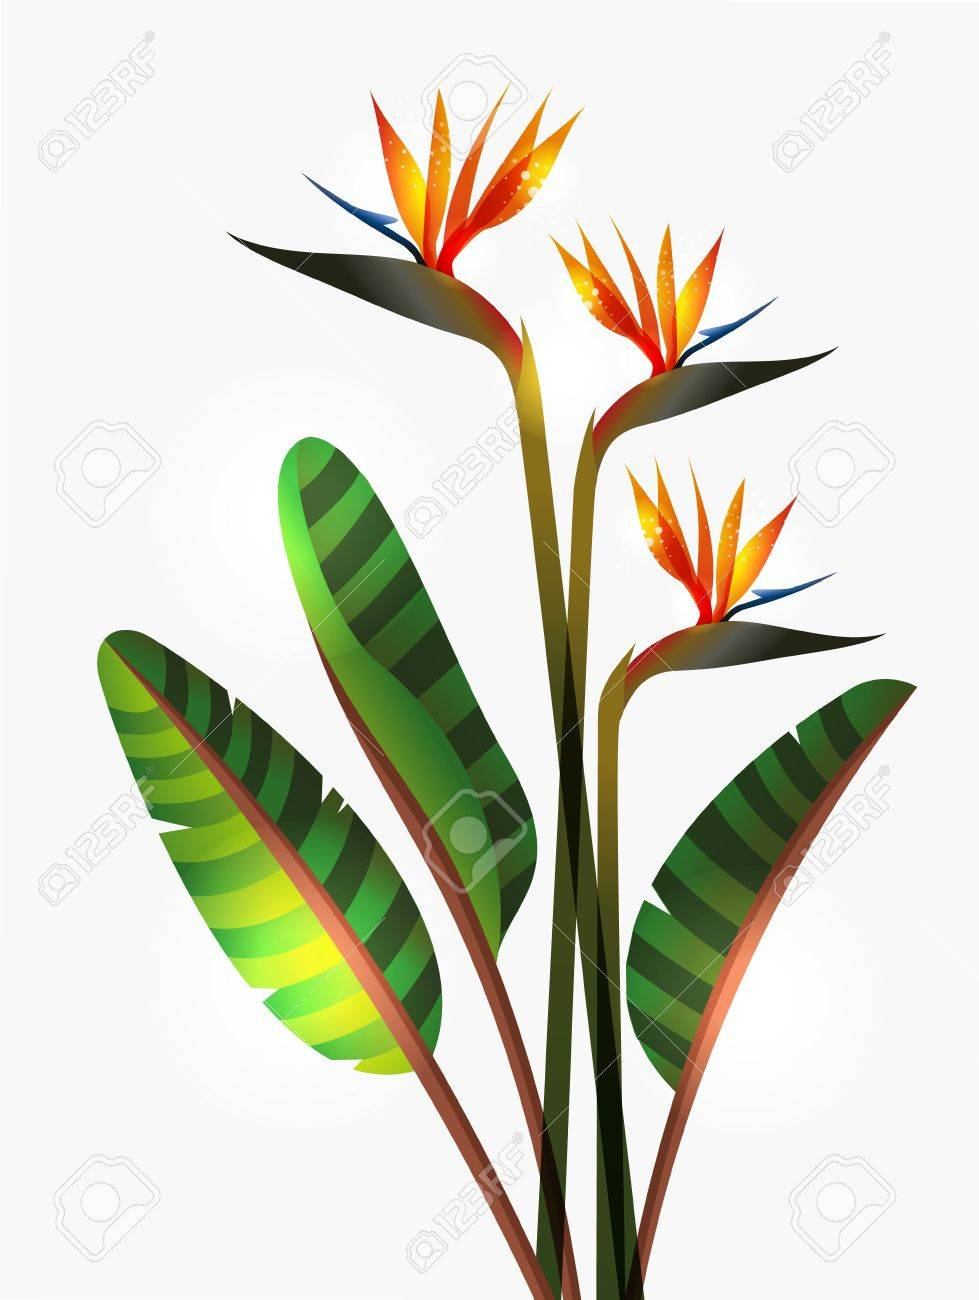 bird of paradise images u0026 stock pictures royalty free bird of